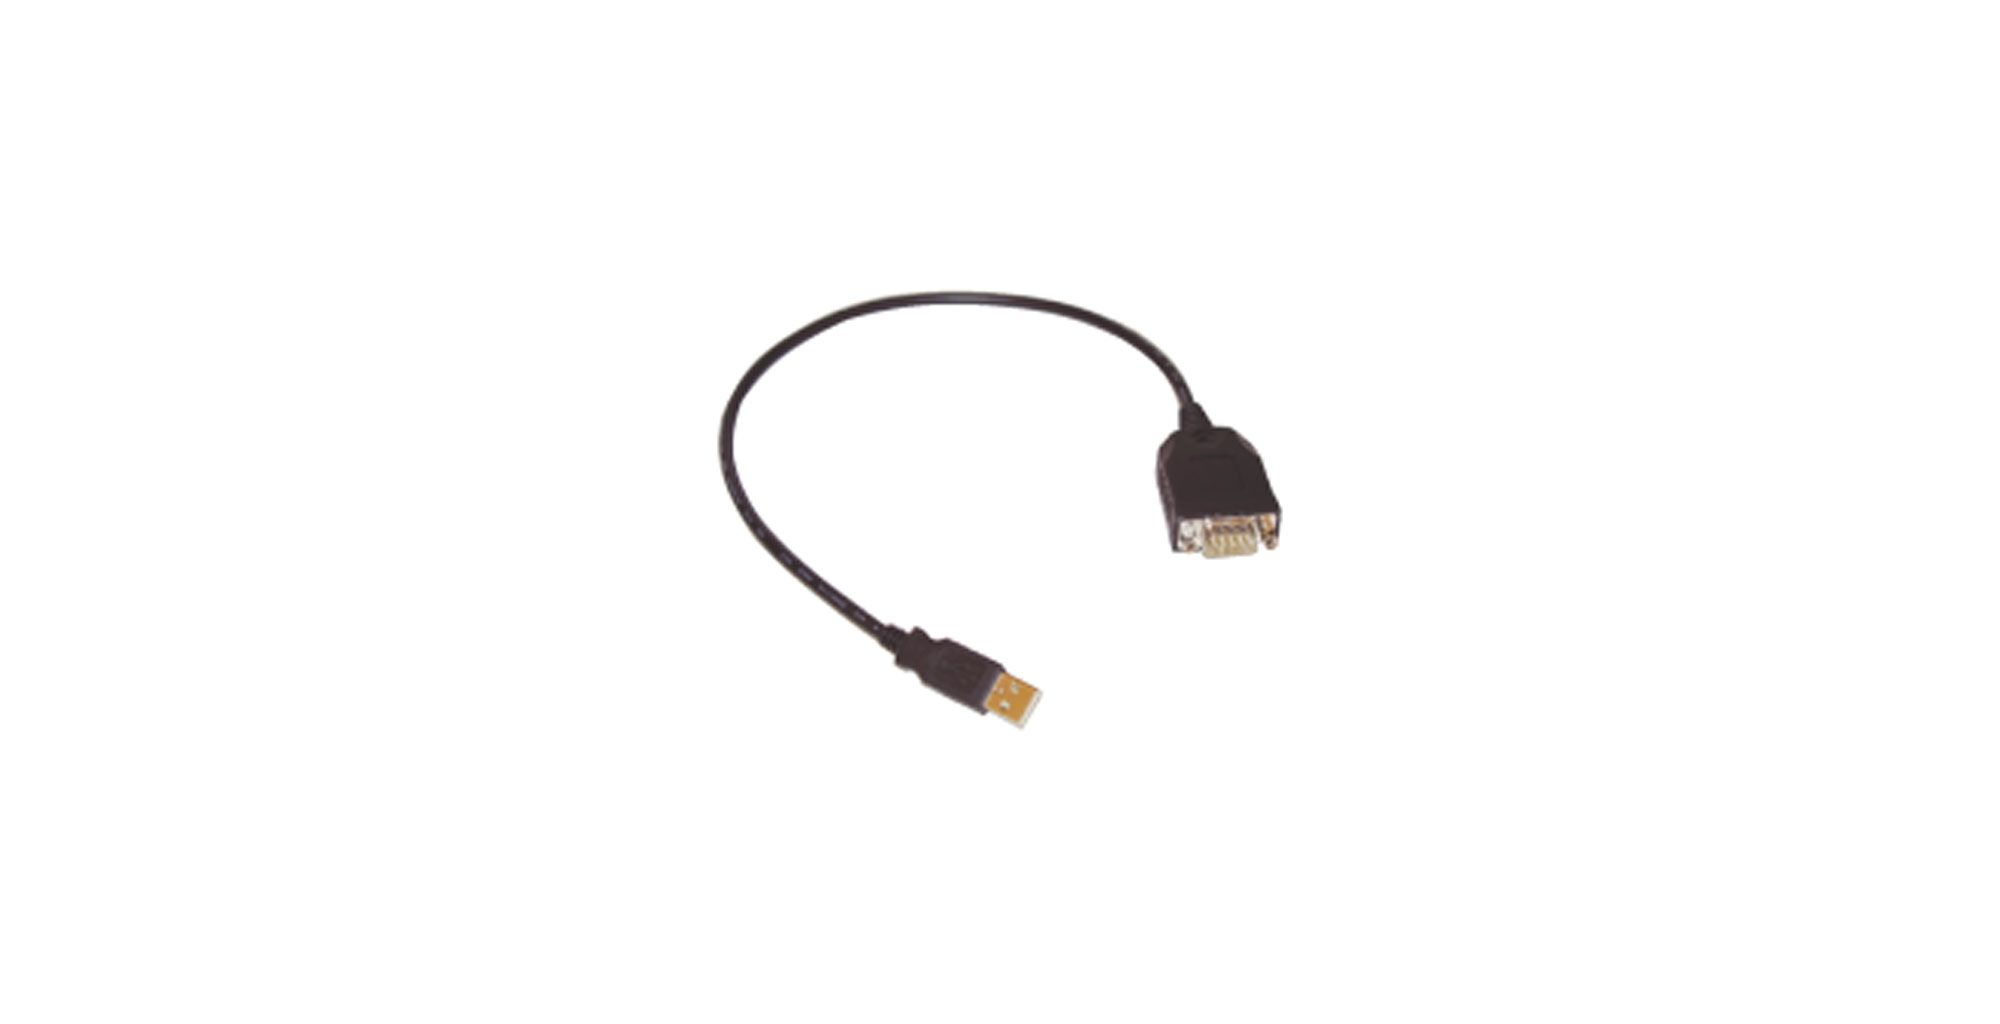 USB to Serial 9-Pin Male Adaptor